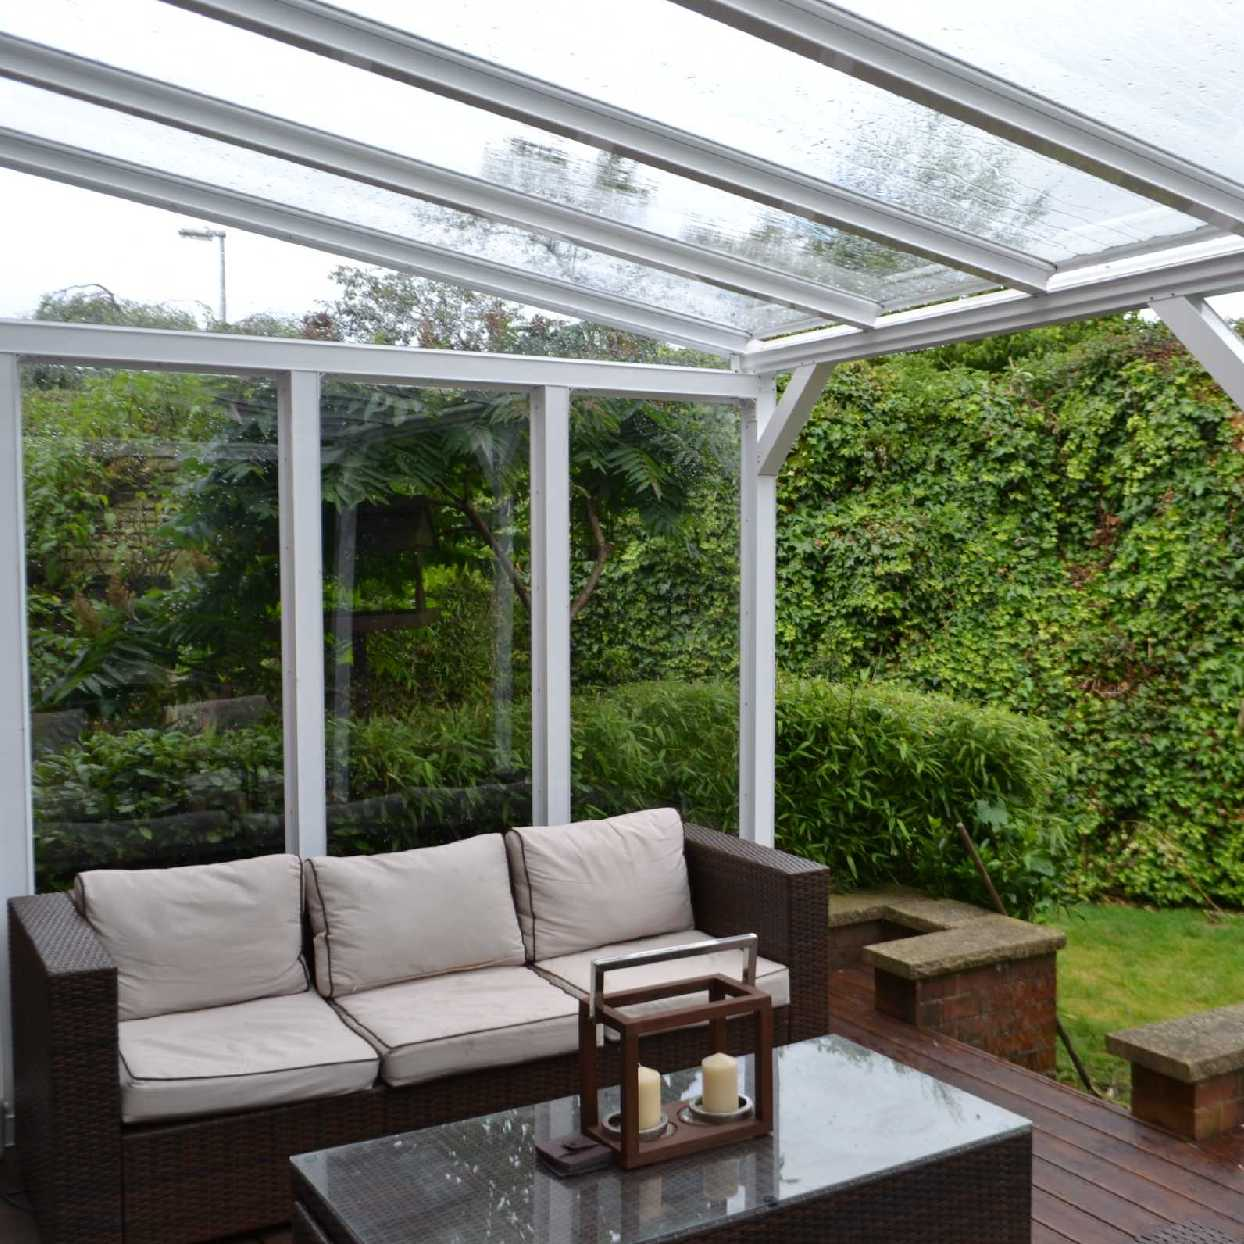 Great selection of Omega Smart White Lean-To Canopy with 16mm Polycarbonate Glazing - 10.6m (W) x 3.5m (P), (5) Supporting Posts